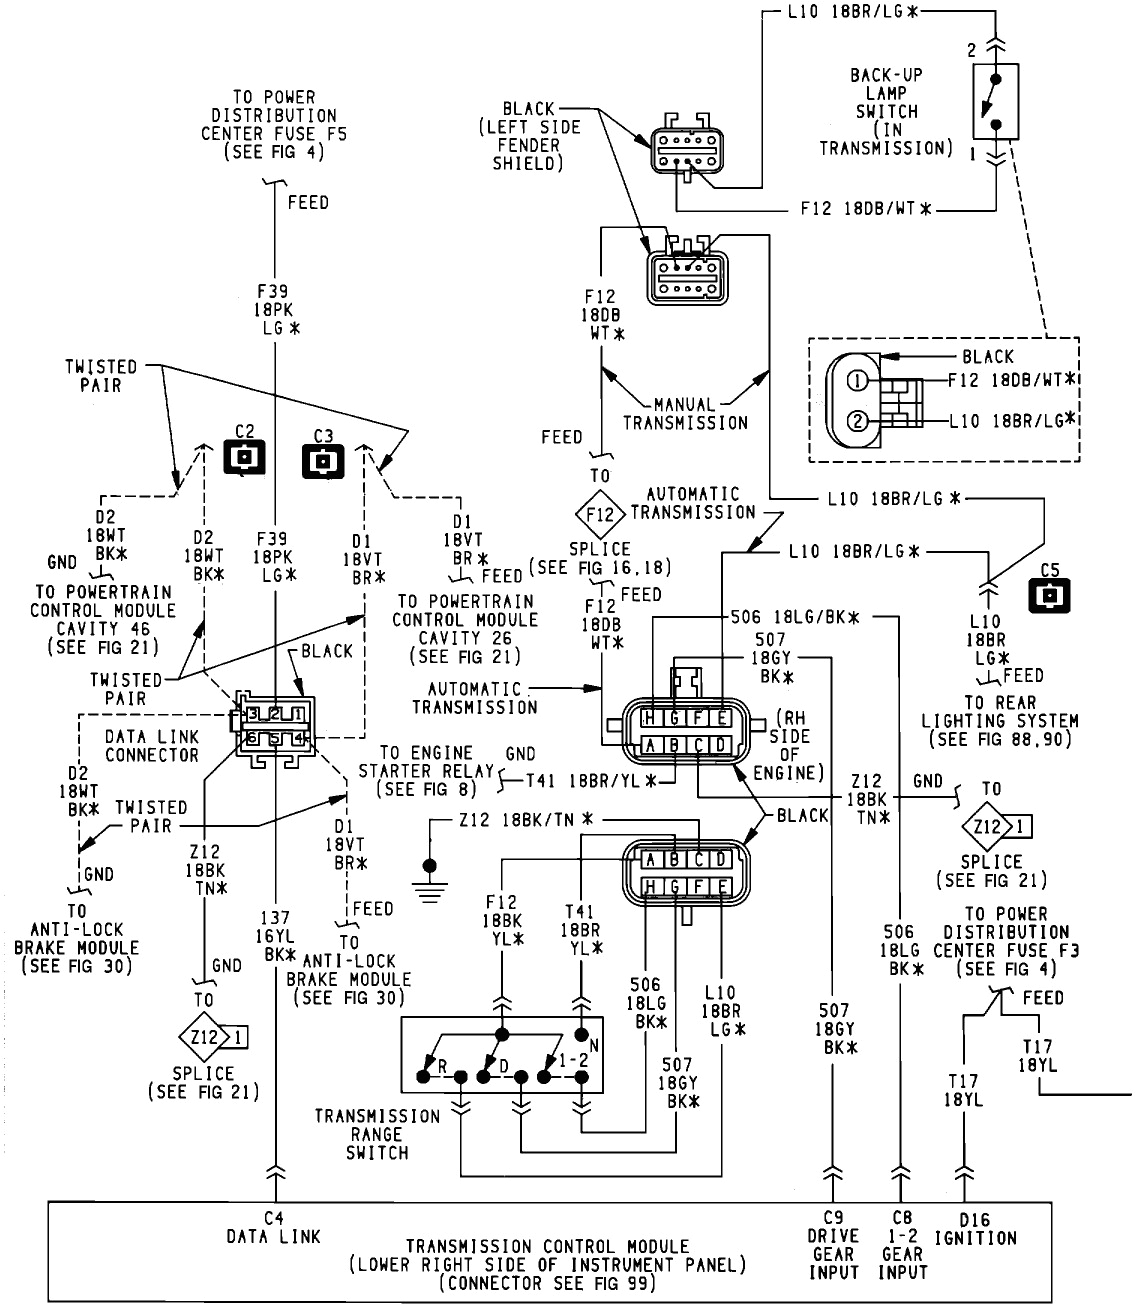 2004 jeep grand cherokee turn signal wiring diagram wiring diagram 2004 jeep grand cherokee turn signal wiring diagram